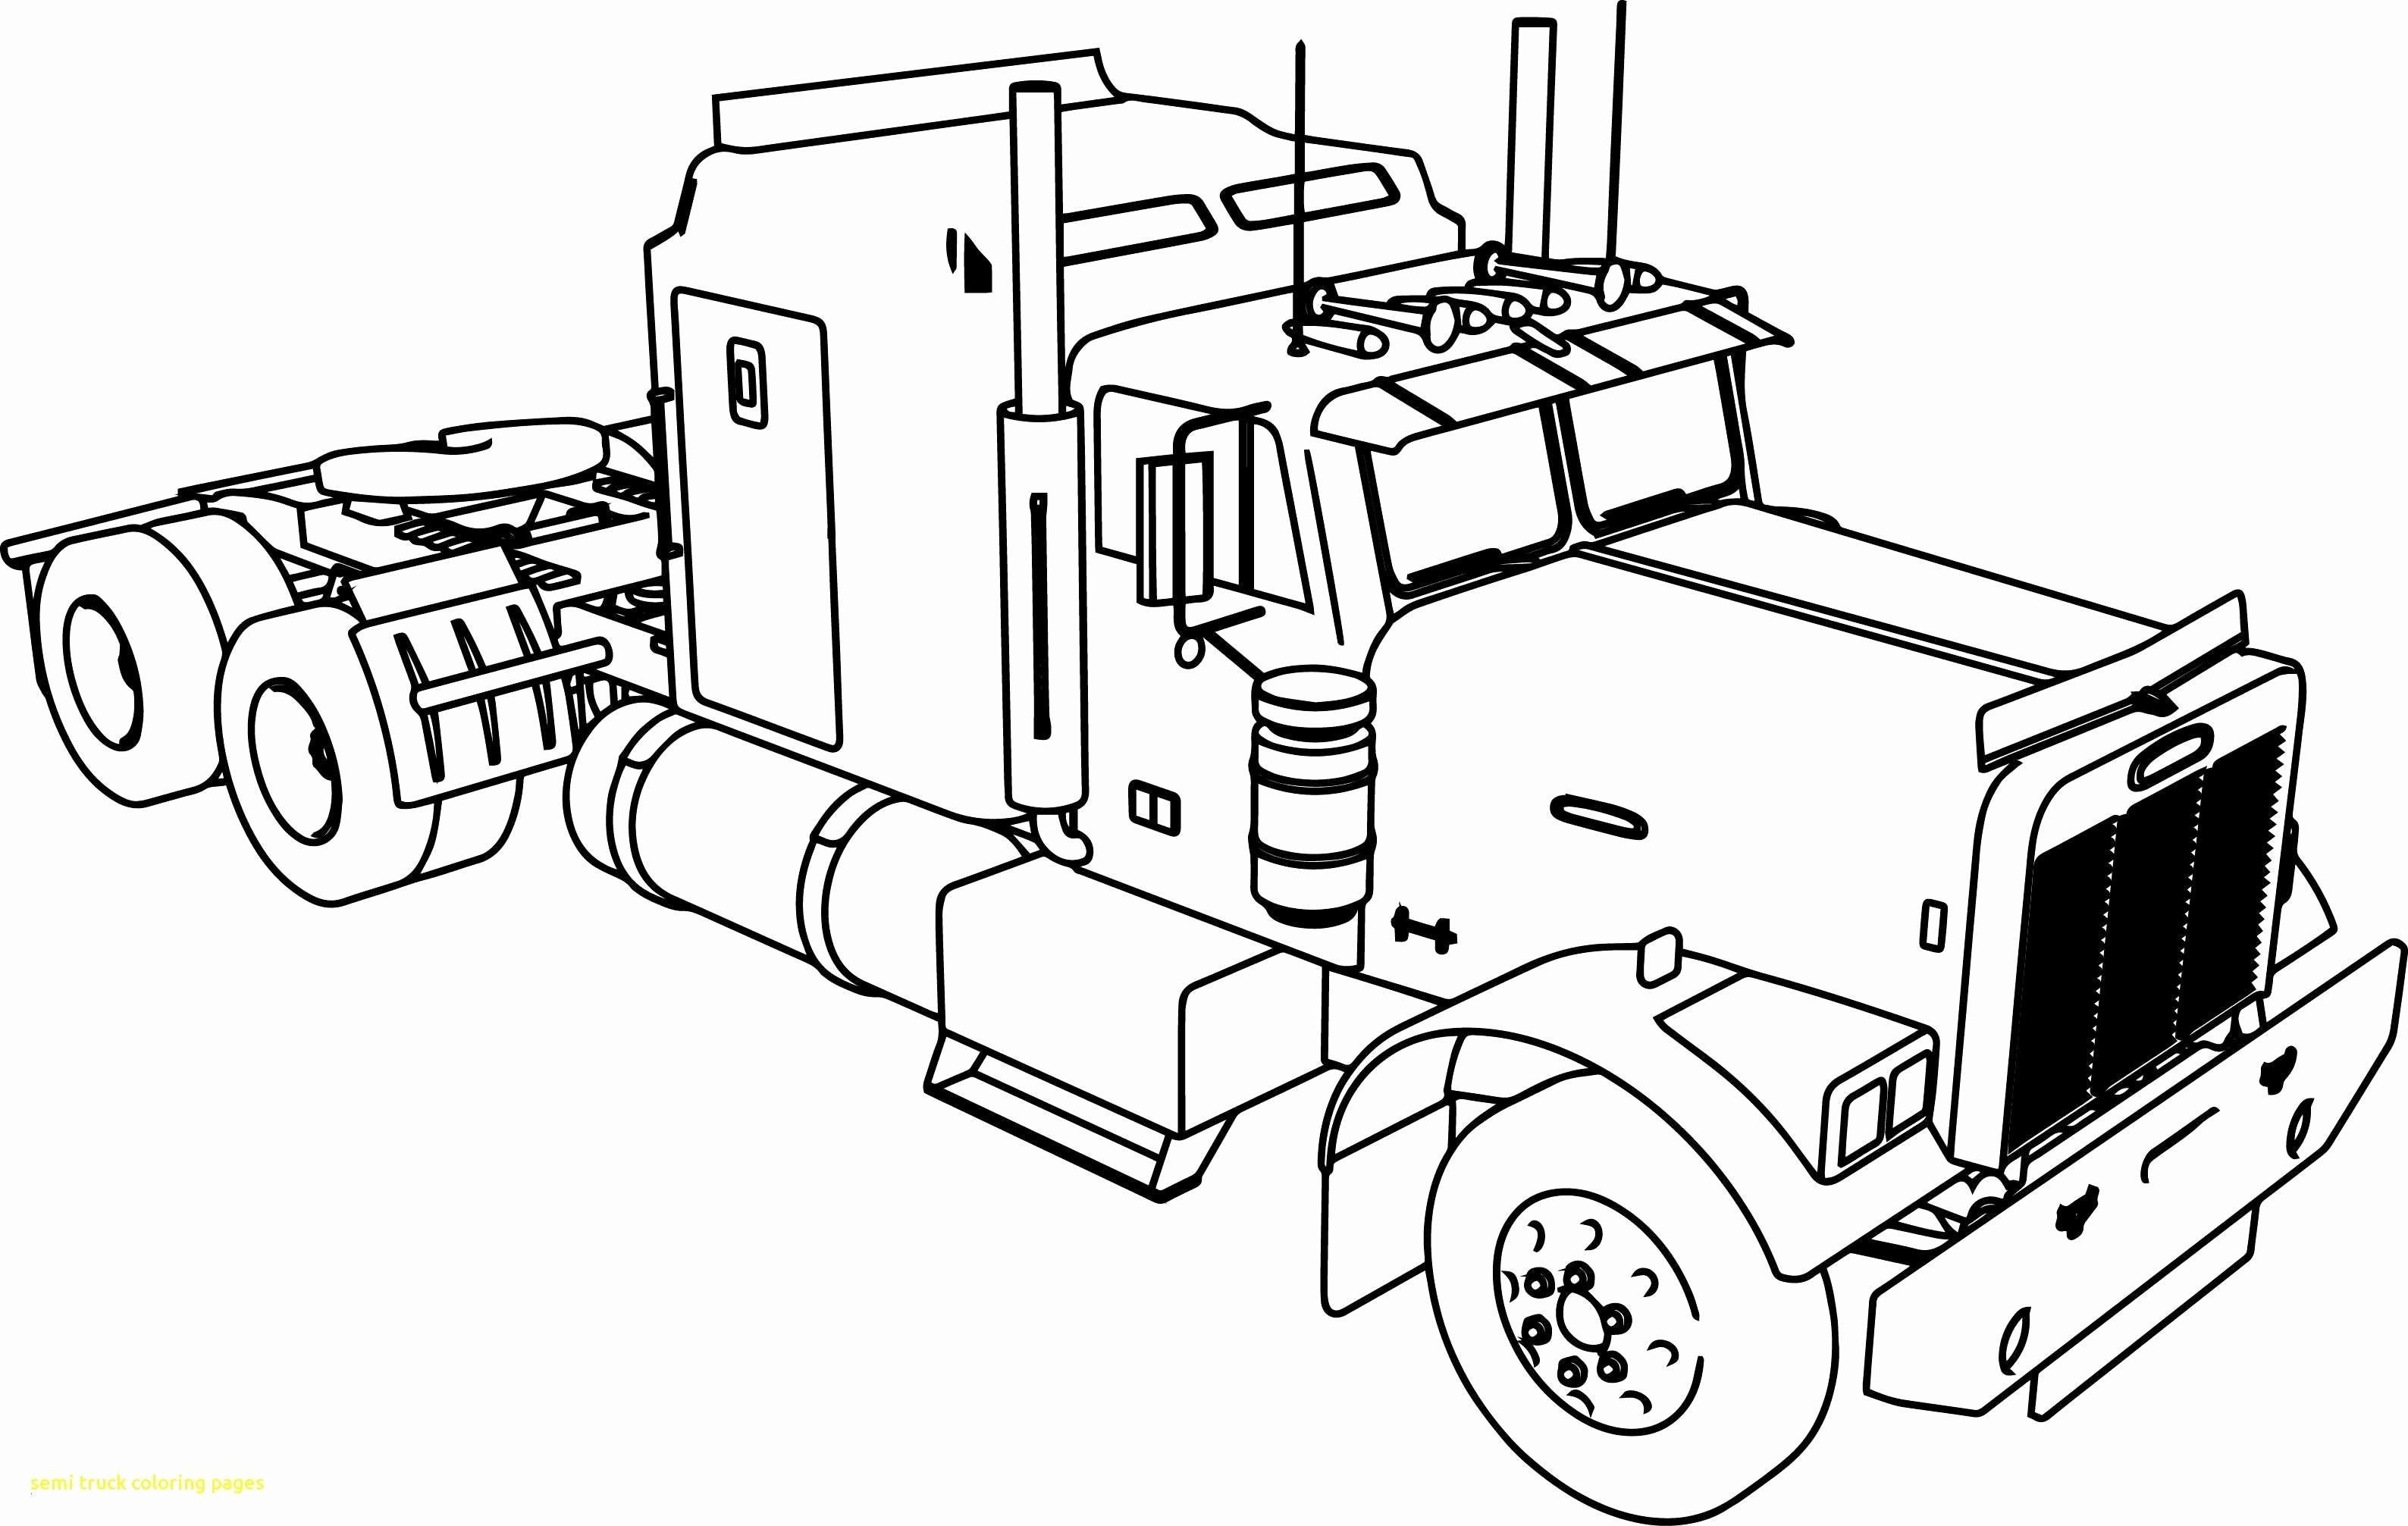 Pin By Jennifer Karen On Drawing Truck Coloring Pages Tractor Coloring Pages Monster Truck Colo In 2021 Truck Coloring Pages Tractor Coloring Pages Cars Coloring Pages